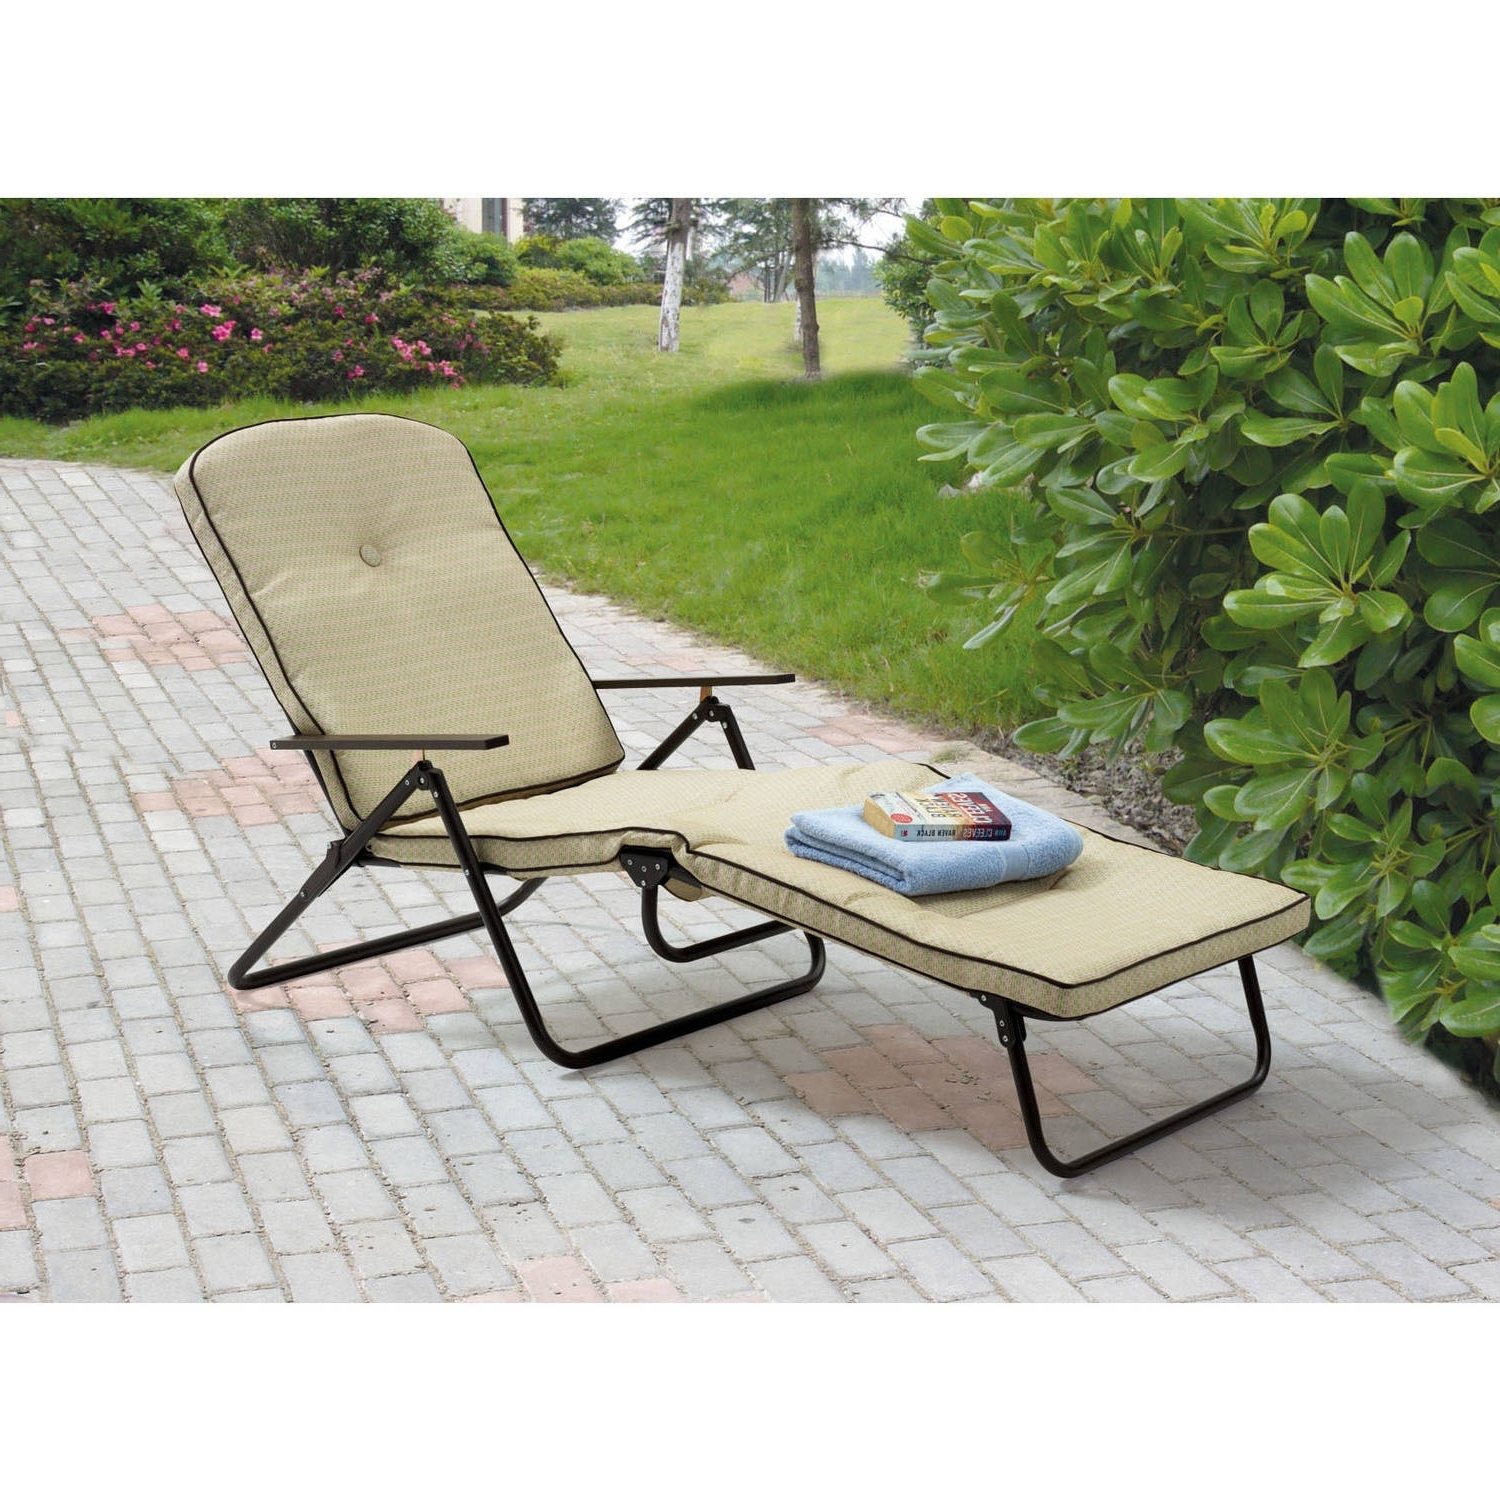 Latest Mainstays Sand Dune Outdoor Padded Folding Chaise Lounge, Tan Throughout Folding Chaise Lounge Chairs For Outdoor (View 13 of 15)